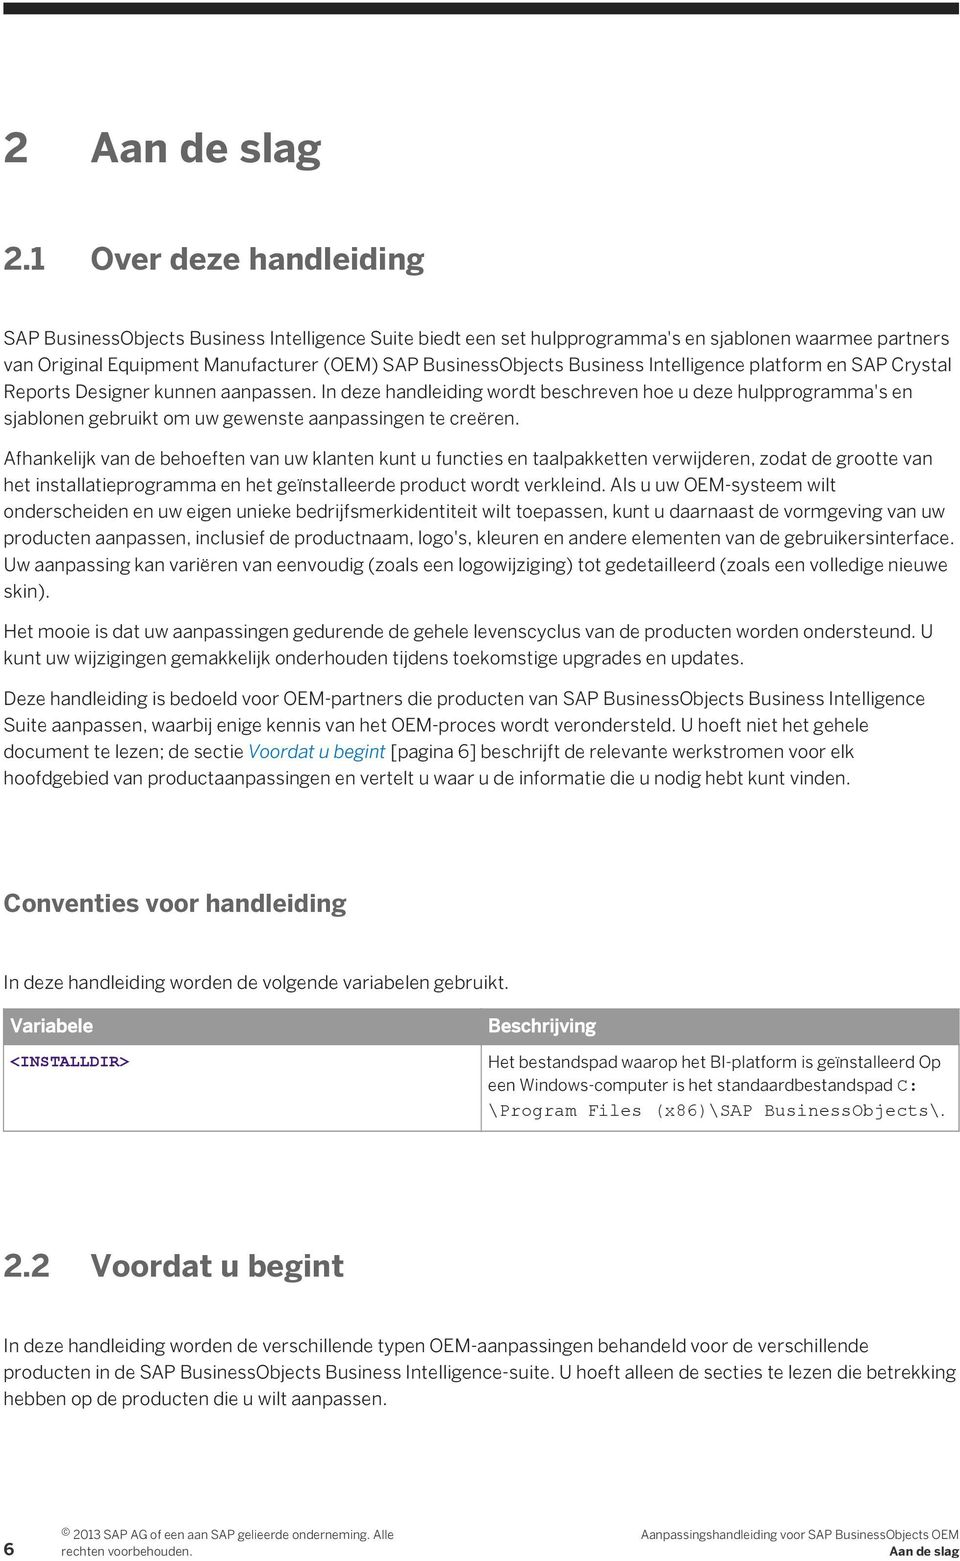 Business Intelligence platform en SAP Crystal Reports Designer kunnen aanpassen.